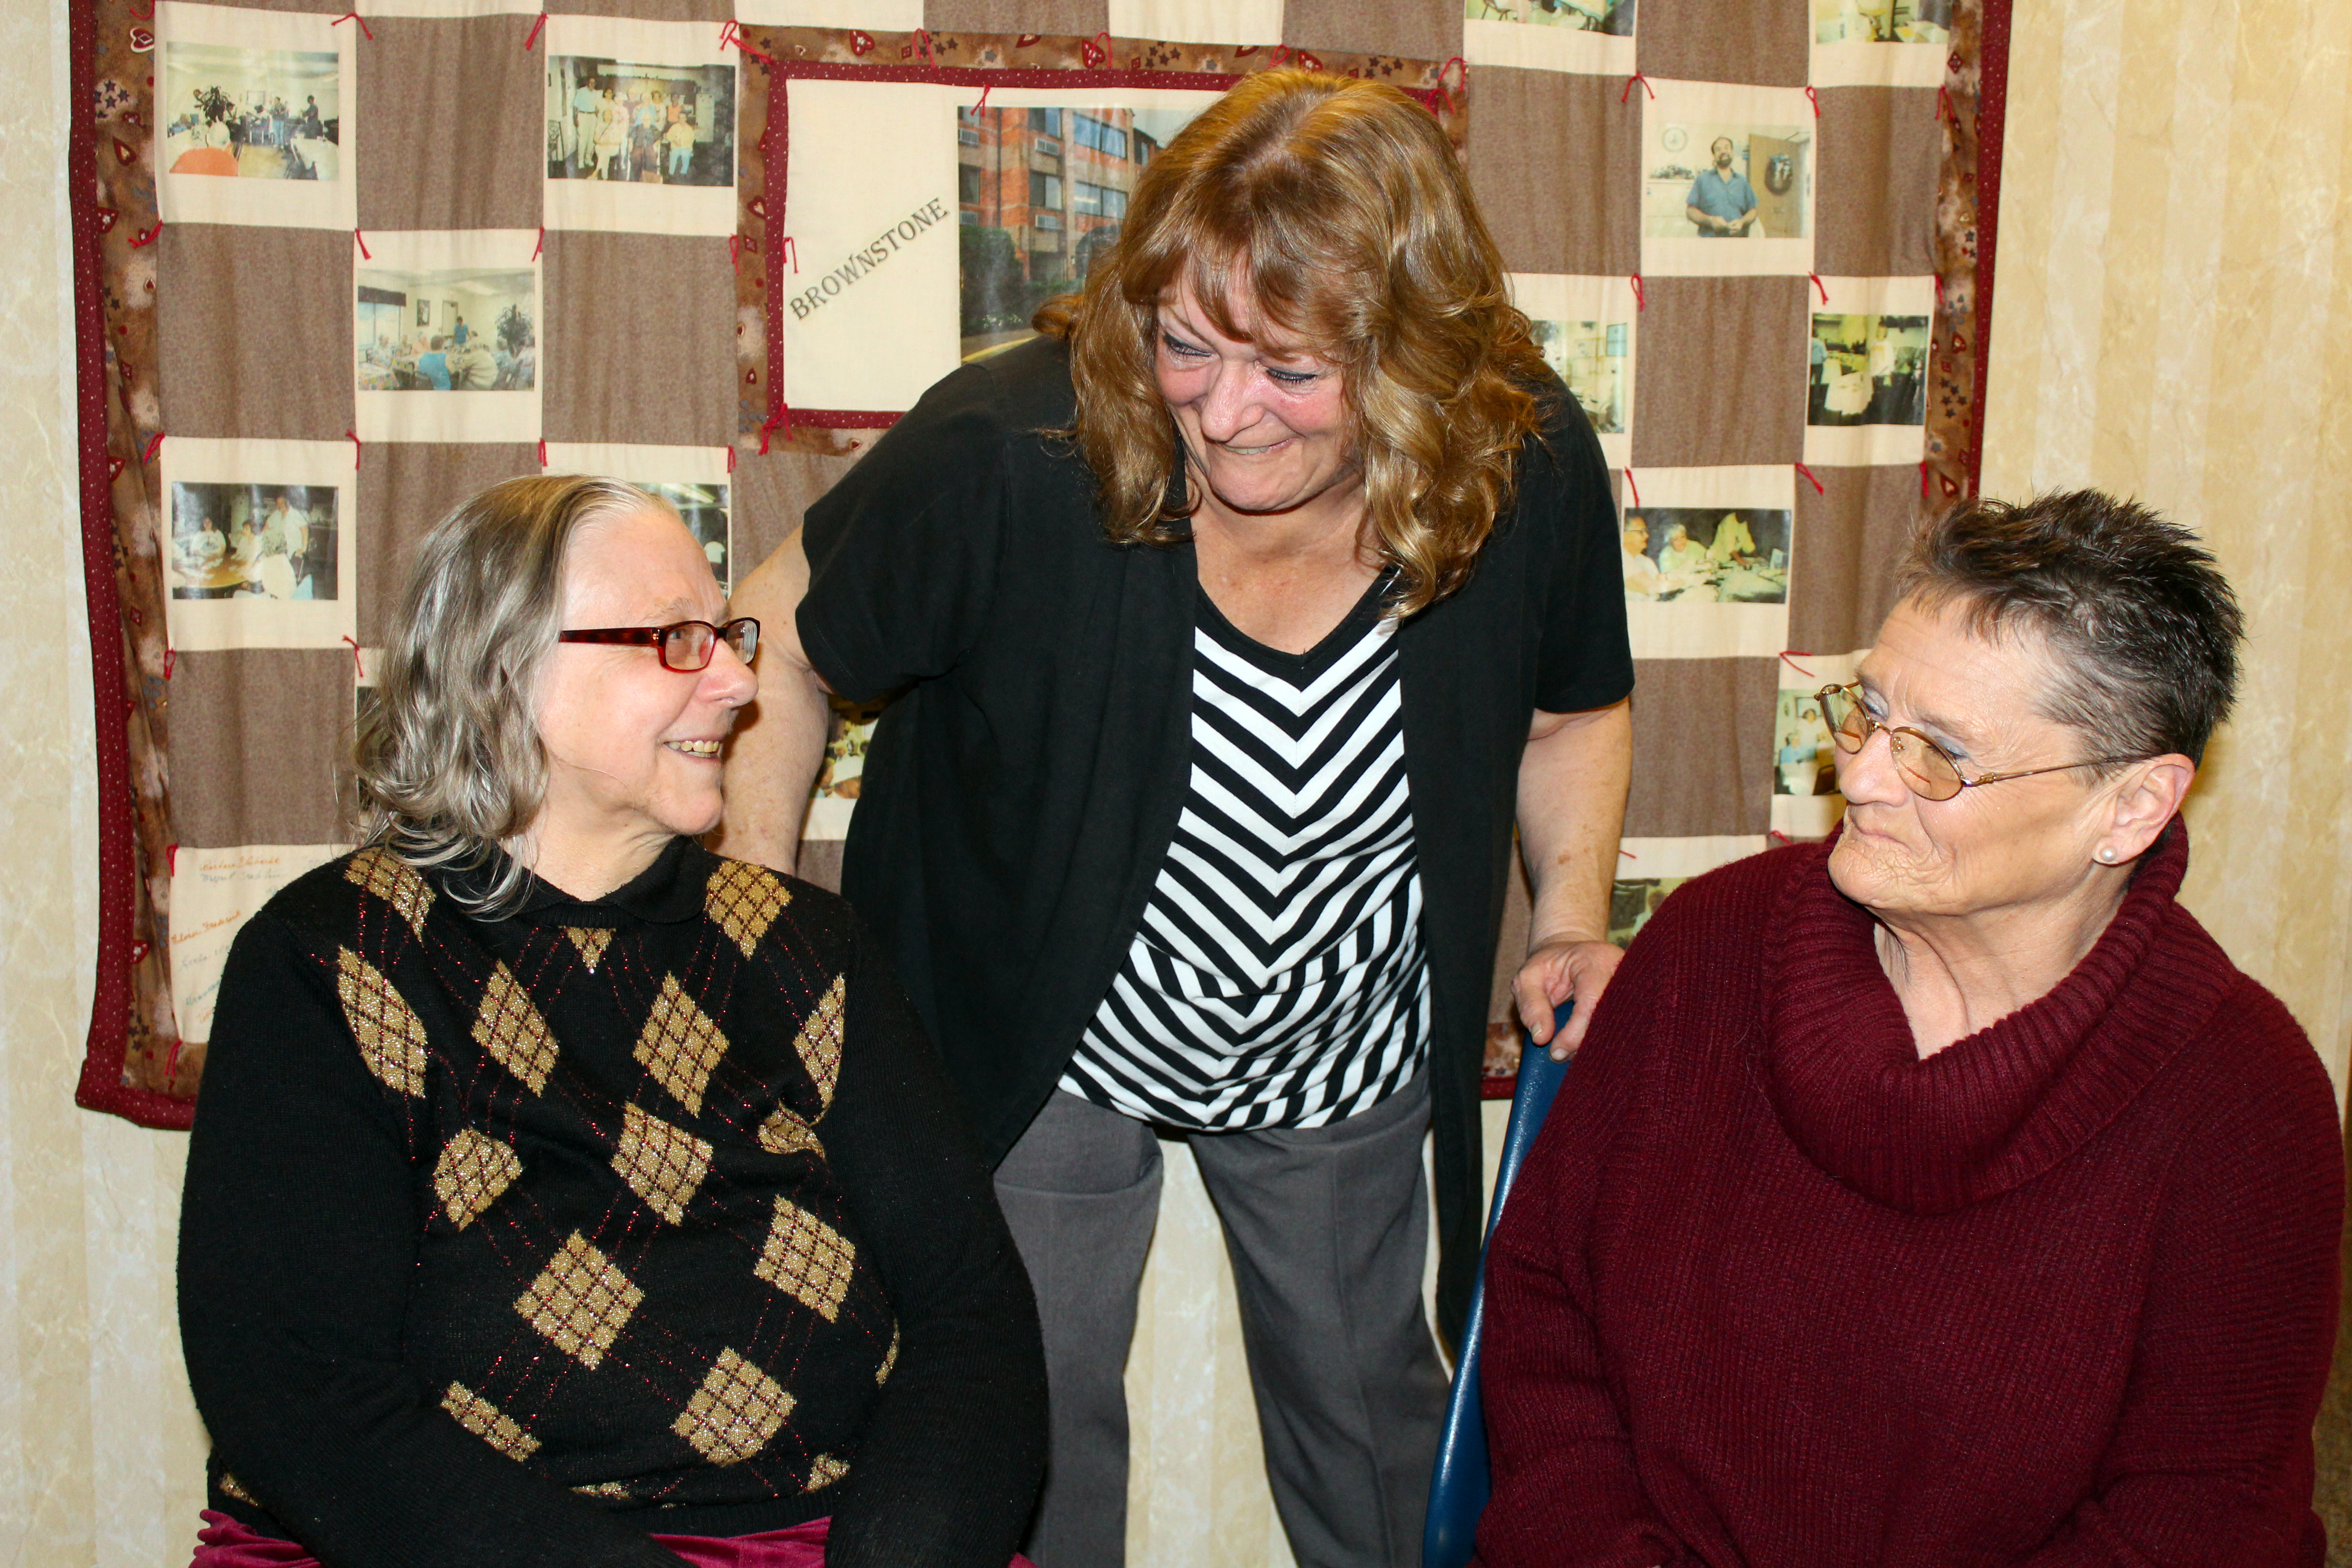 Sandy Crane (left) and Caroline Smothers (right) with United Church Homes' Brownstone Terrace Housing Manager Jane Millisor.